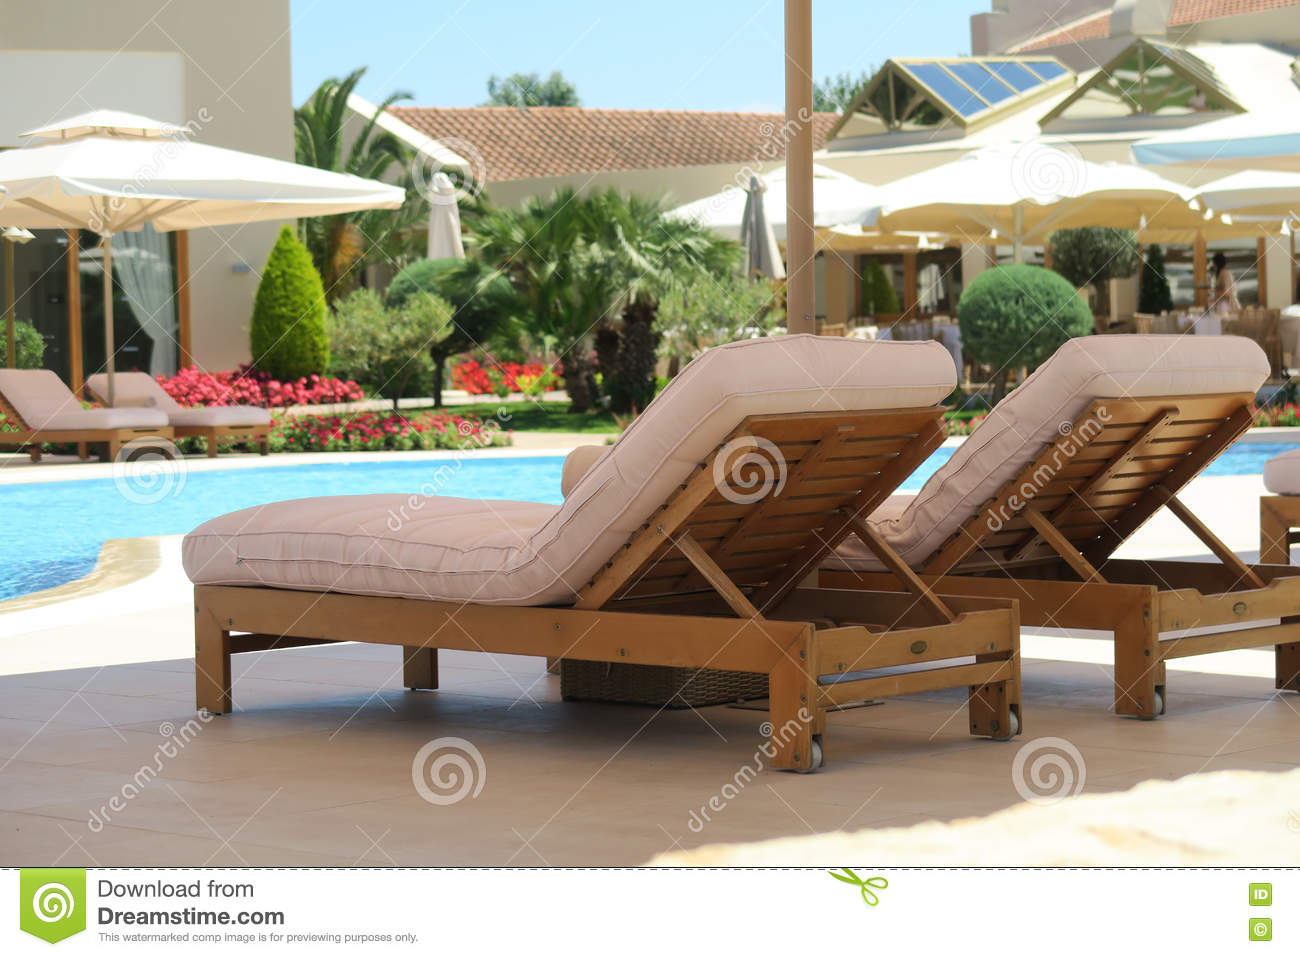 Wooden deck chairs - Royalty Free Stock Photo Download Hotel Pool Wooden Deck Chairs